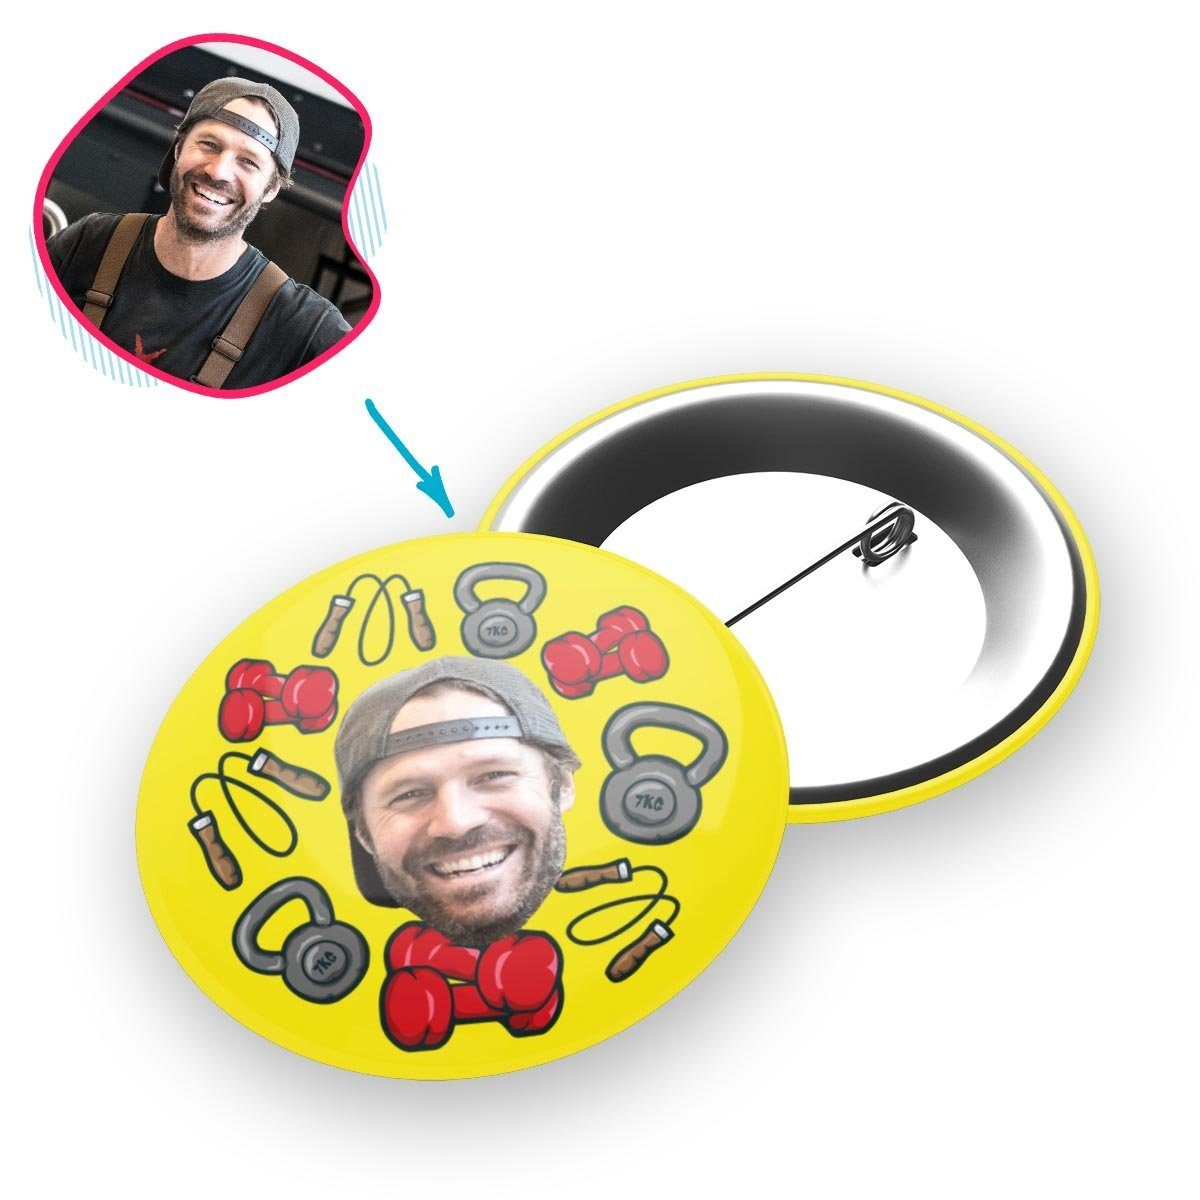 yellow Gym & Fitness pin personalized with photo of face printed on it